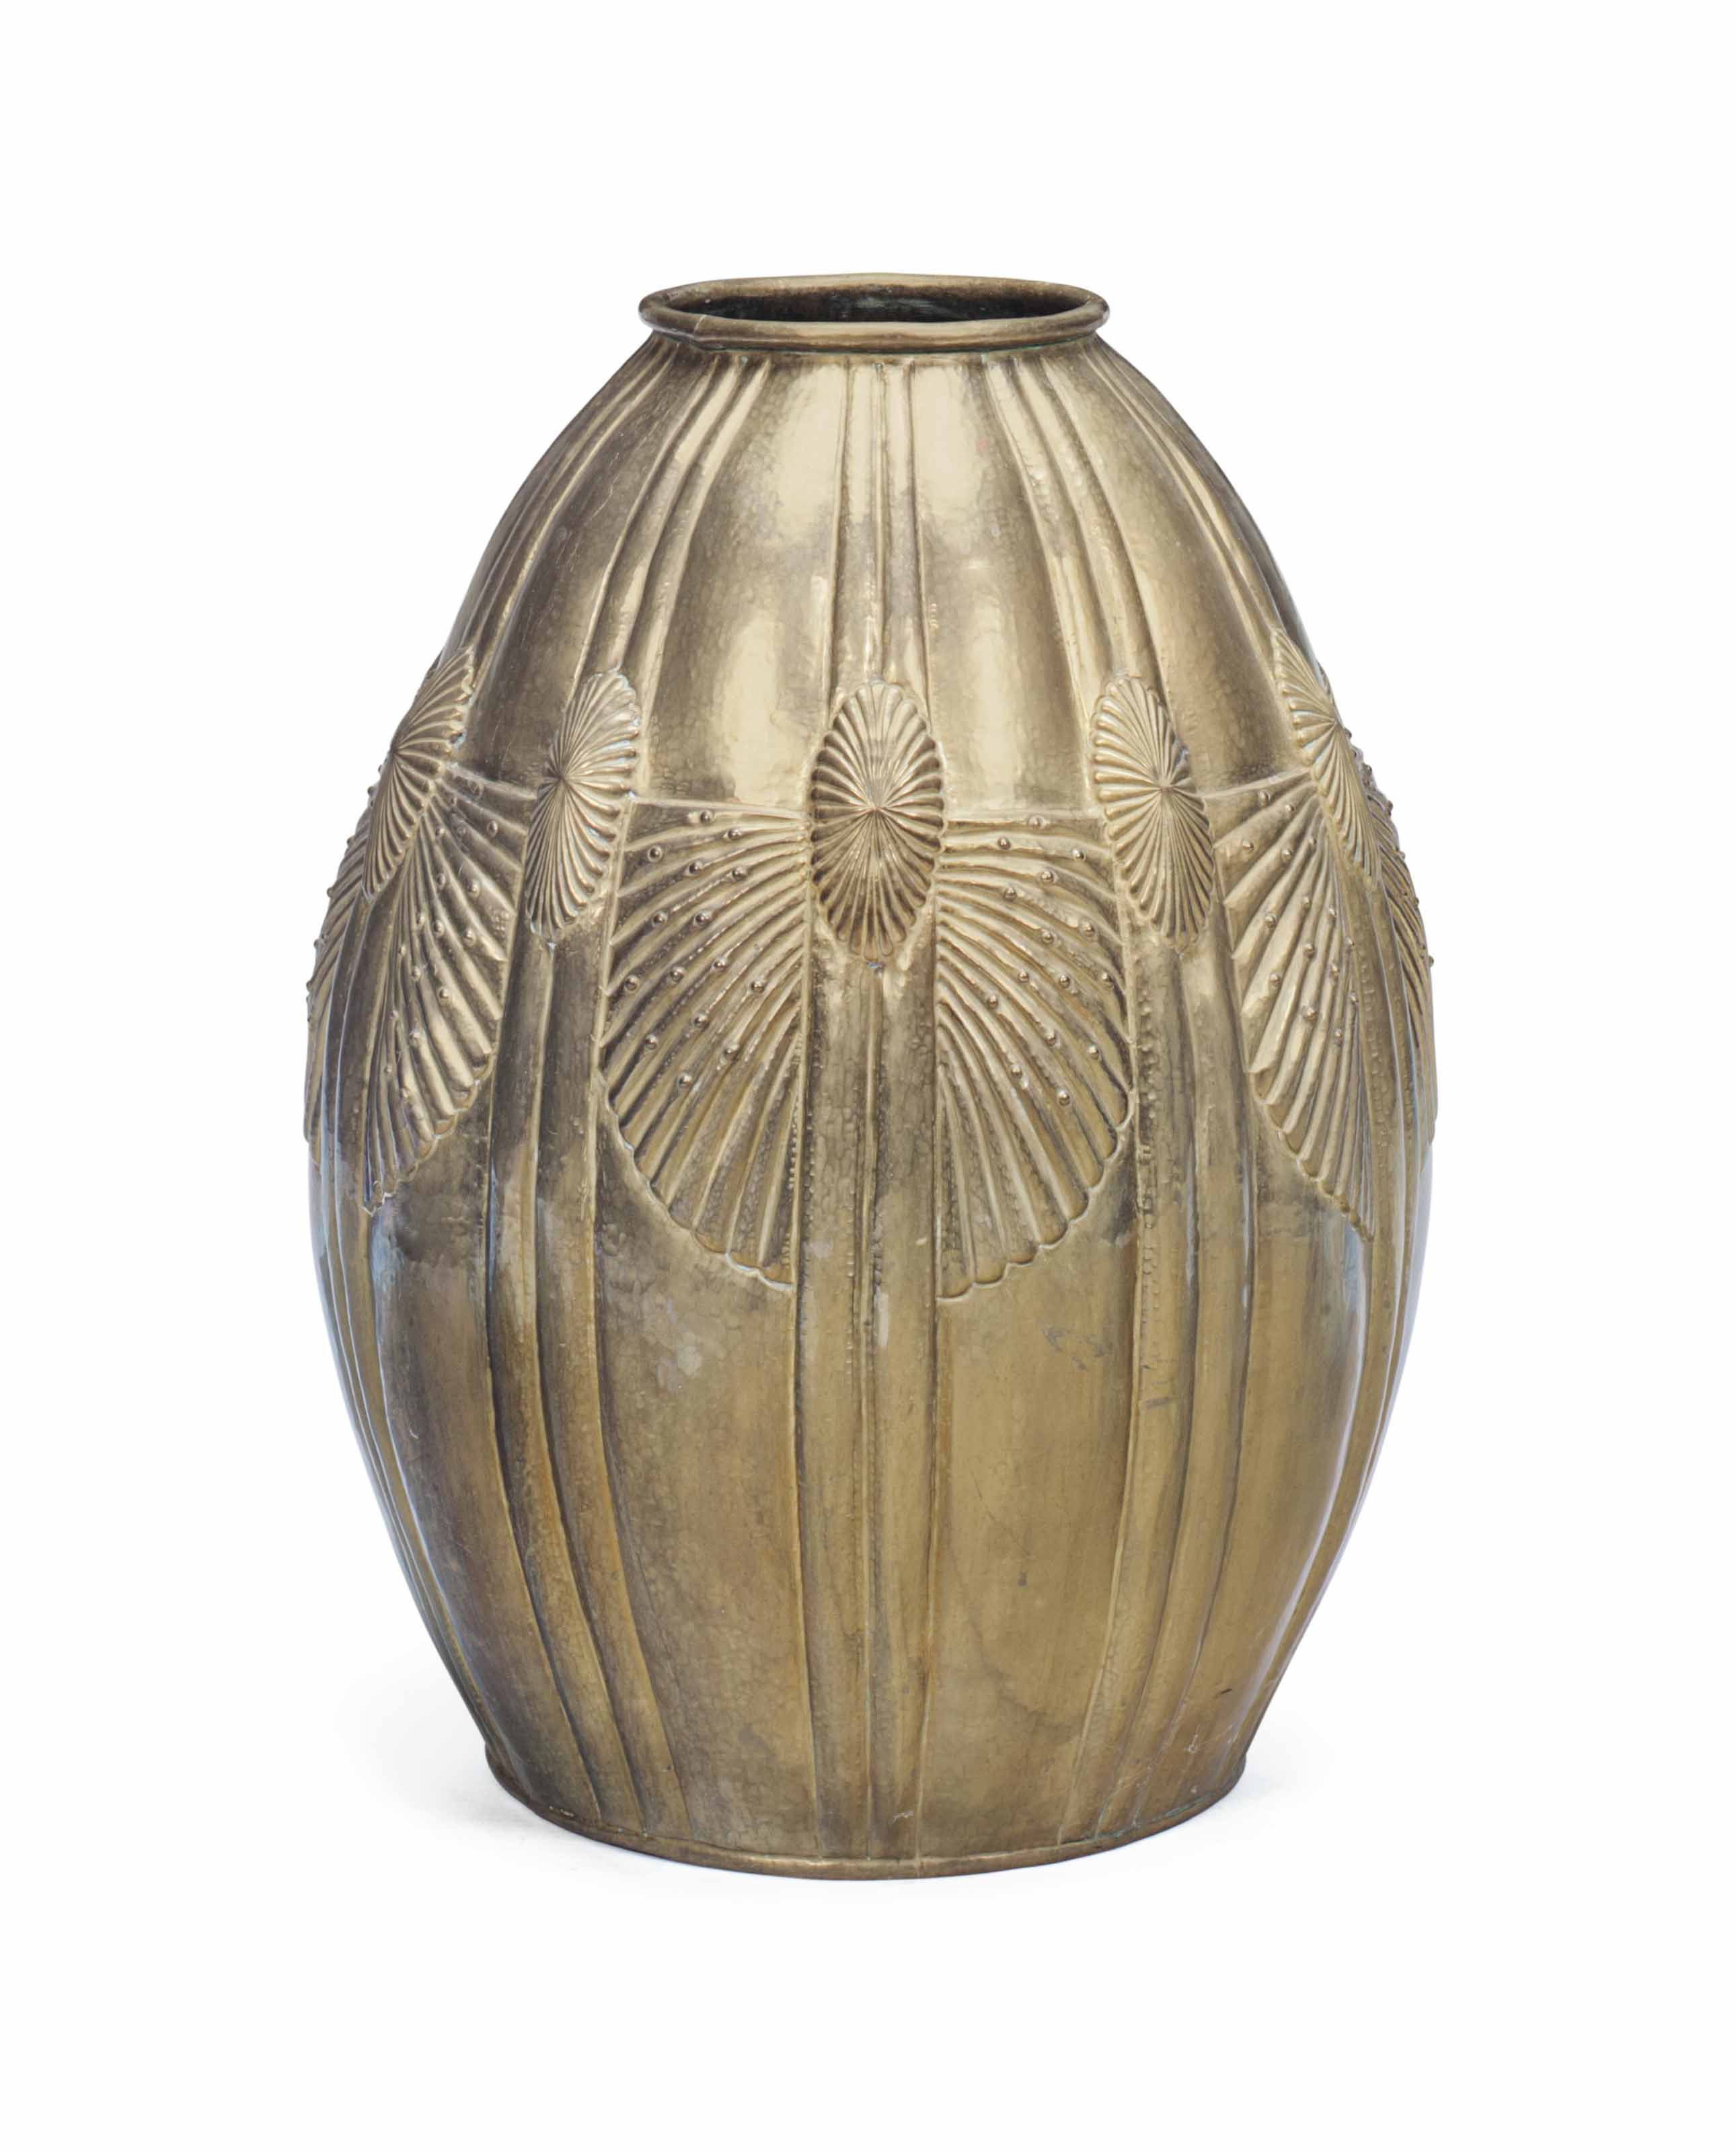 A FRENCH HAMMERED BRASS URN